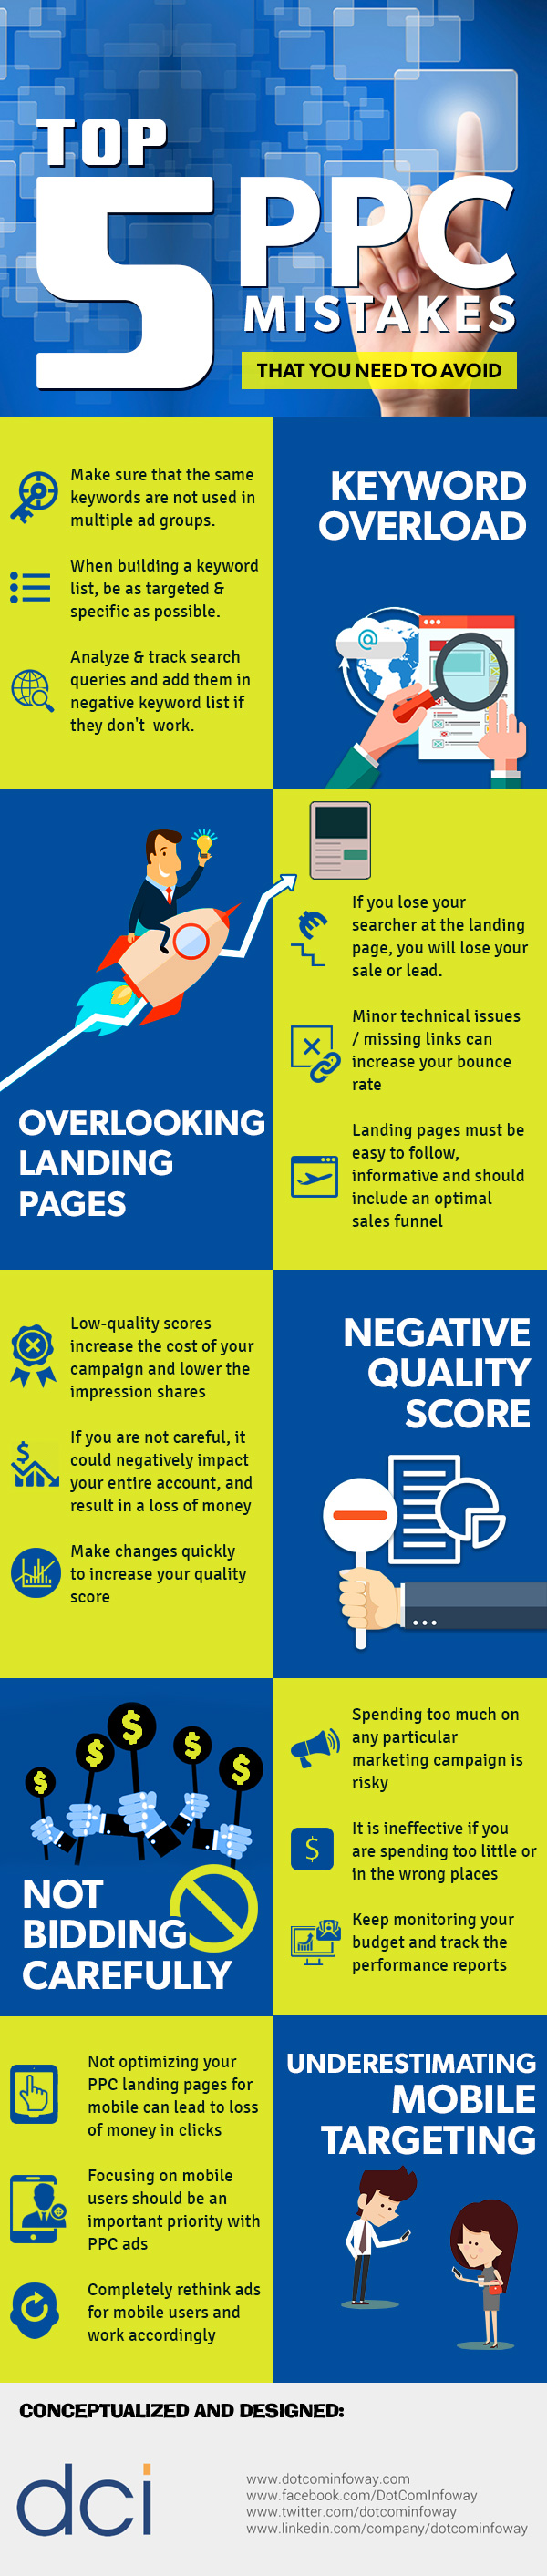 Top 5 PPC Mistakes to Avoid [Infographic]